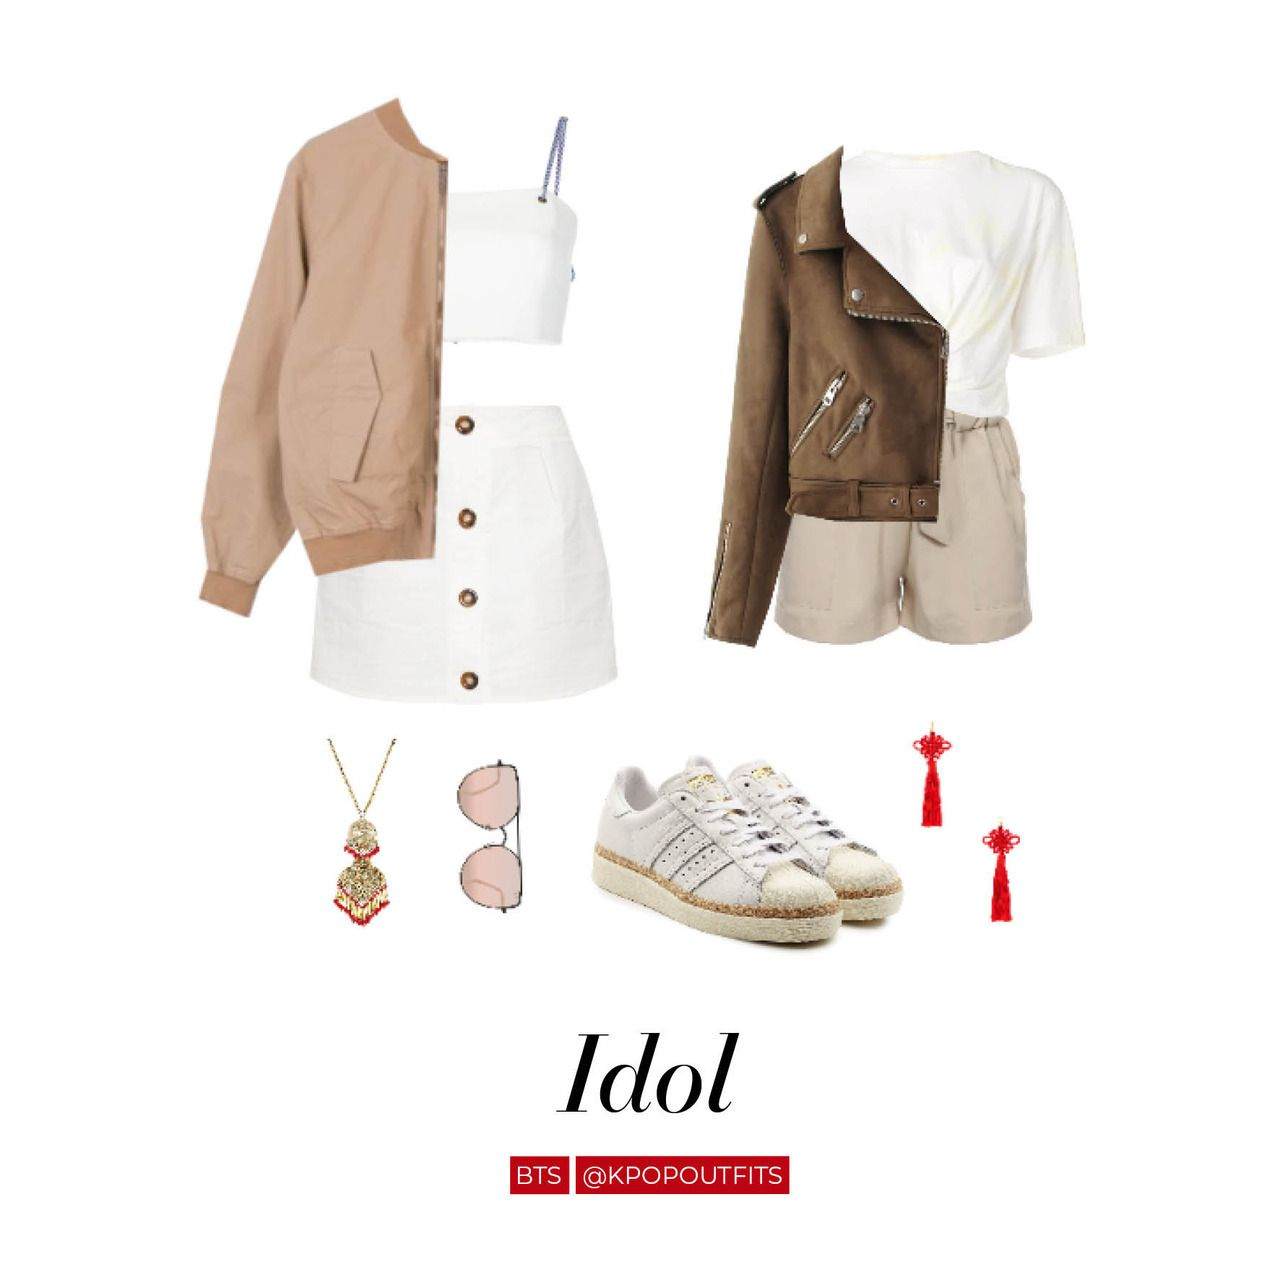 Outfits Inspired By Idol By Bts Click Here To Find Where To Buy Clothing Pi Bts Inspired Outfits Korean Fashion Kpop Inspired Outfits Kpop Fashion Outfits